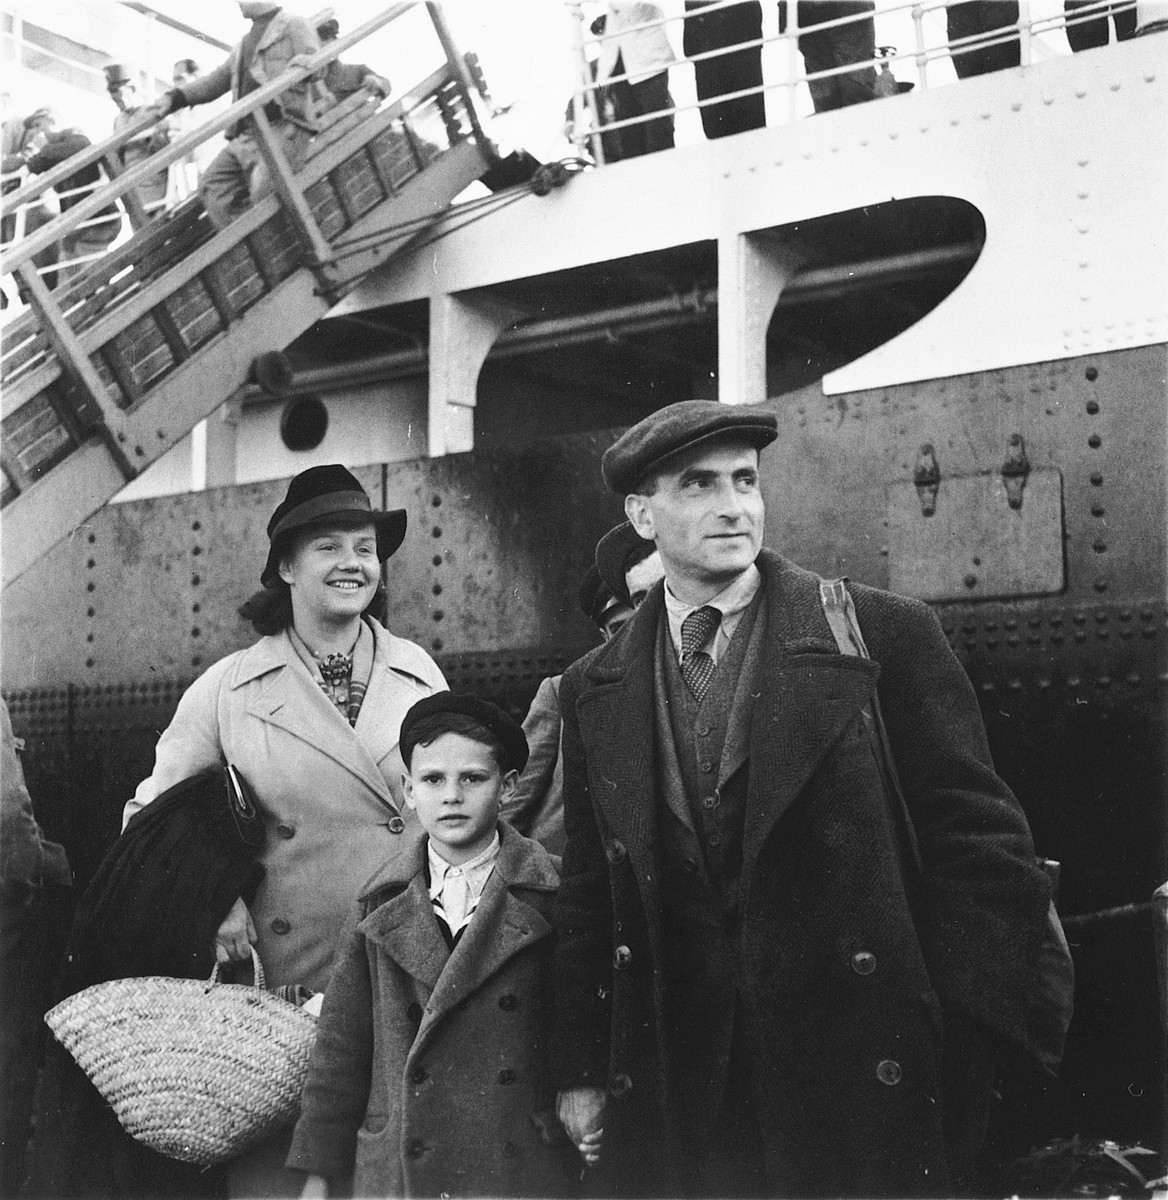 A Jewish refugee family prepares to board the SS Serpa Pinto in the port of Lisbon.